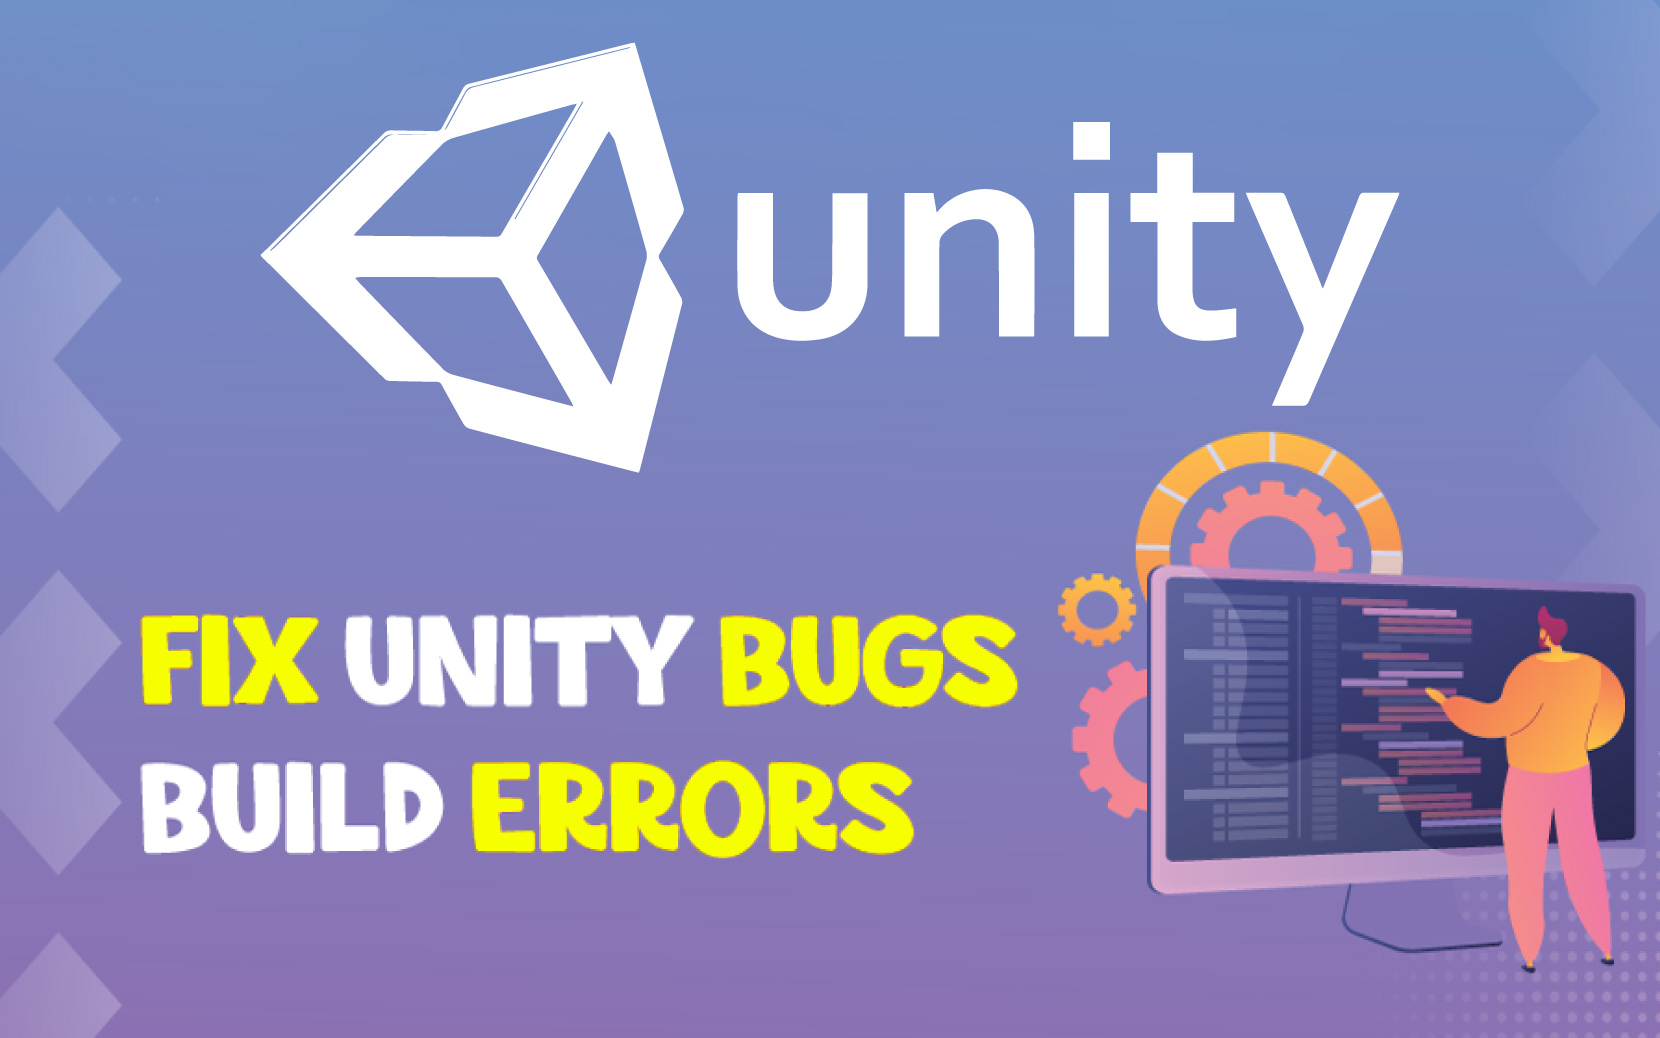 Fix game bugs, unity build errors, and ads integration issues